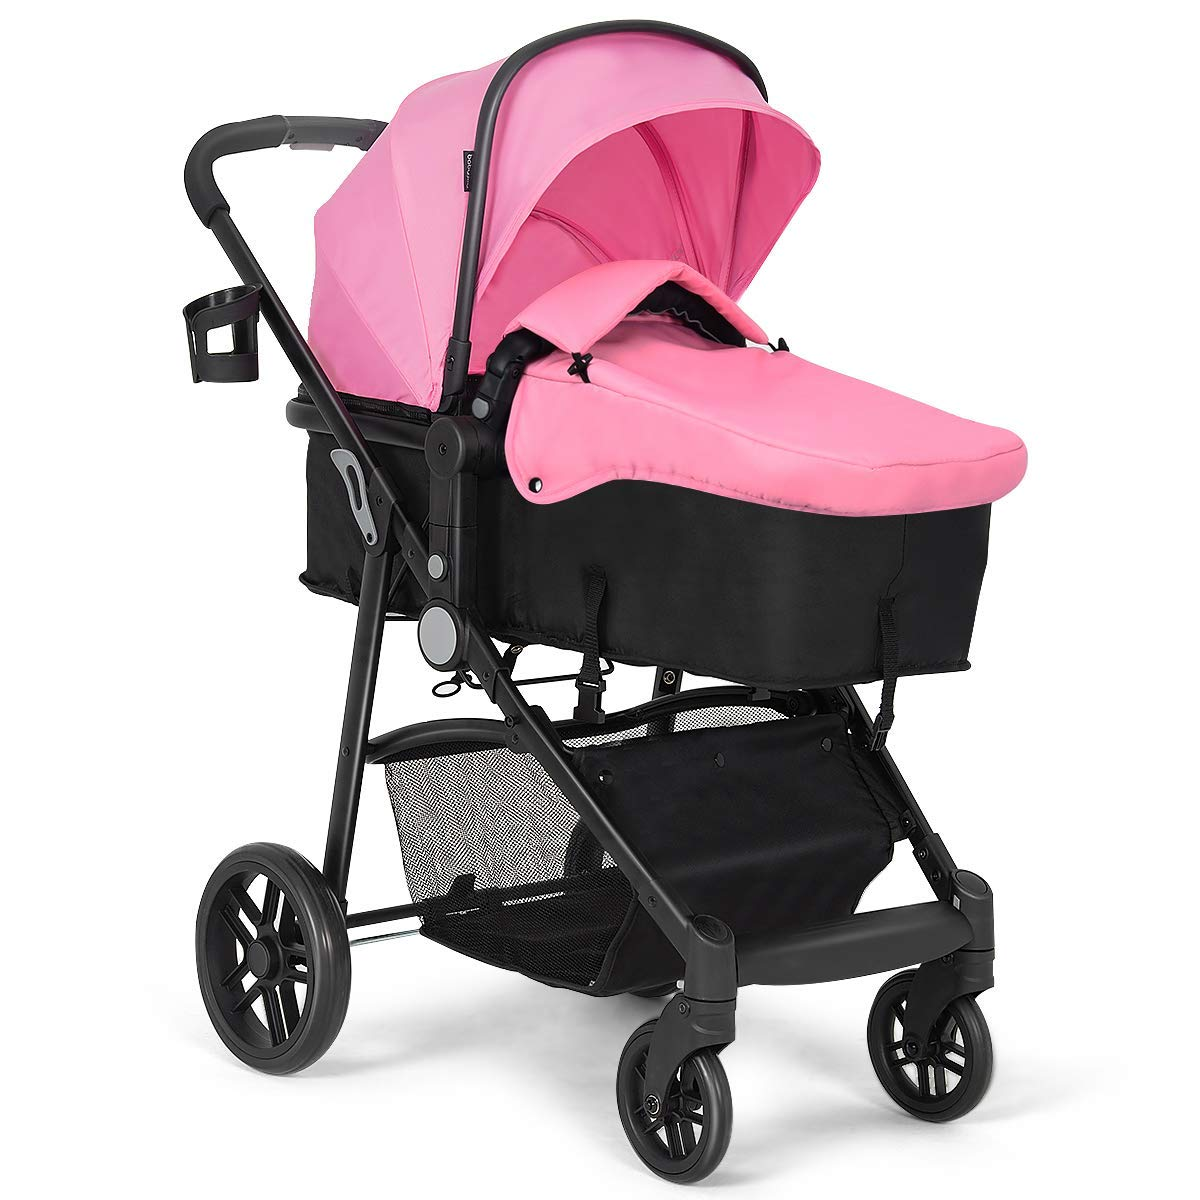 Costzon Baby Stroller, 2 in 1 Convertible Carriage Bassinet to Stroller, Pushchair with Foot Cover, Cup Holder, Large Storage Space, Wheels Suspension, 5-Point Harness (Pink Color) by Costzon (Image #1)